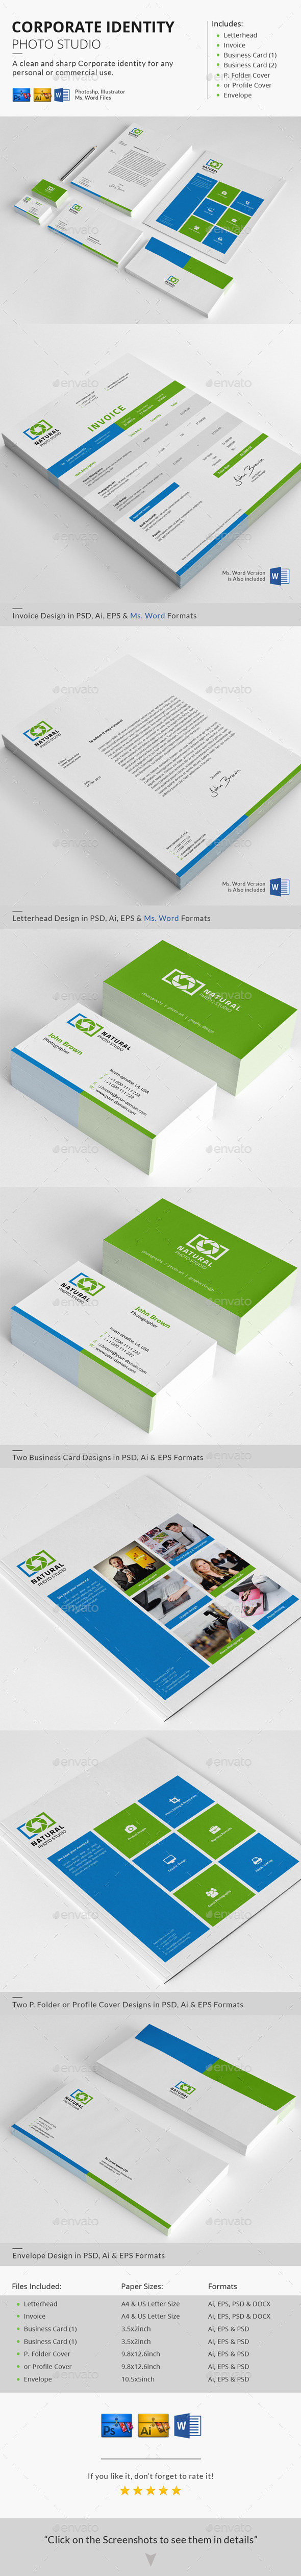 GraphicRiver Corporate Identity Photo Studio 10000729